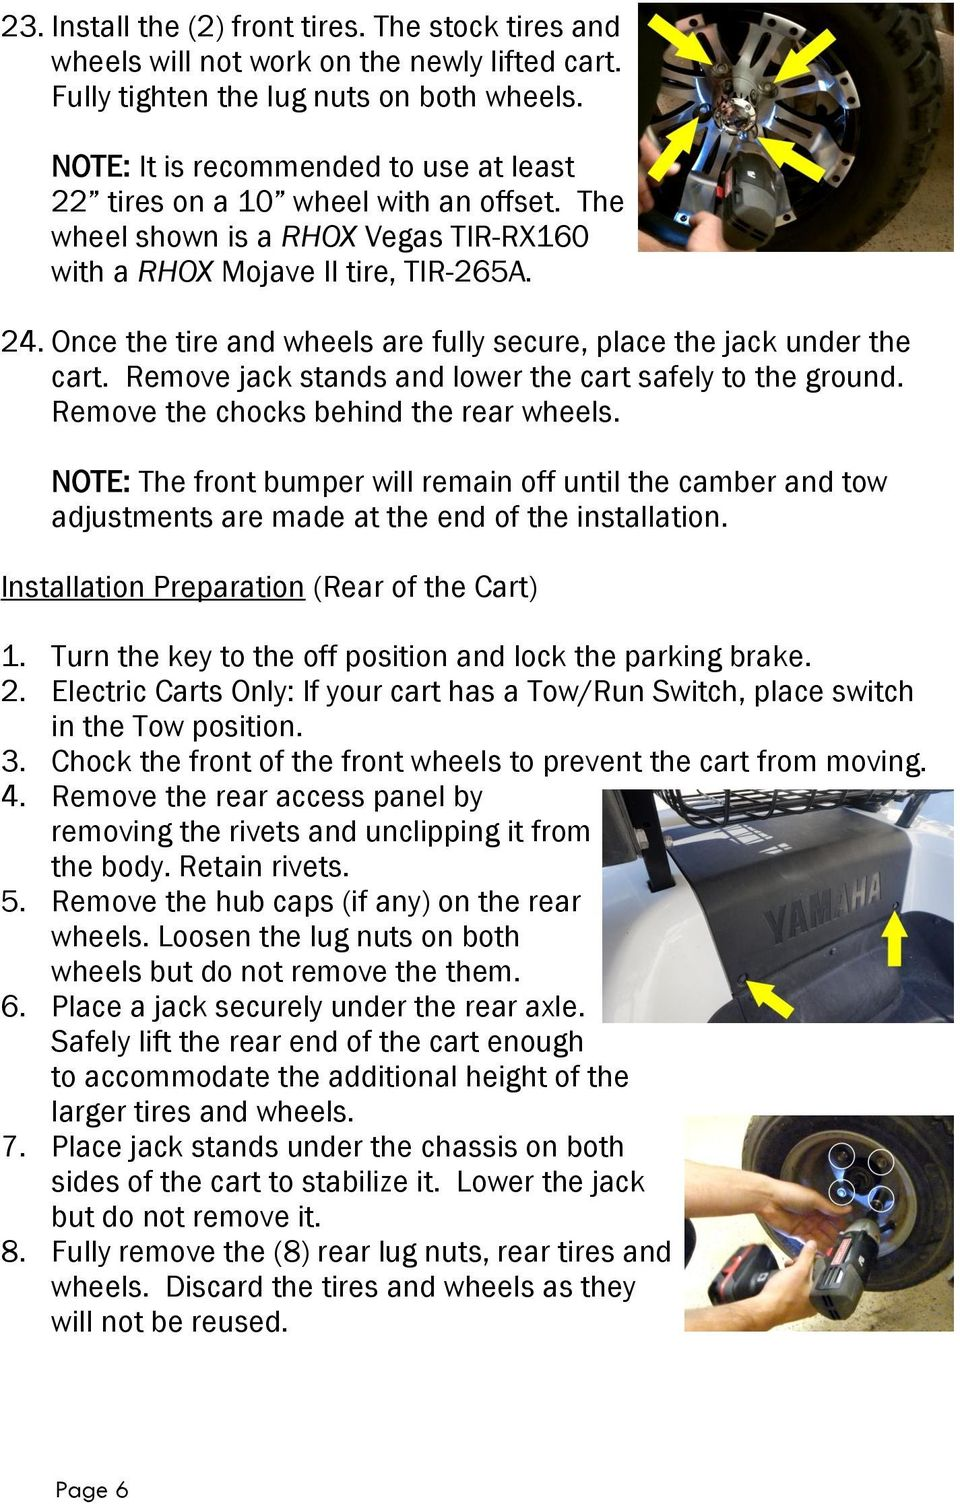 Once the tire and wheels are fully secure, place the jack under the cart. Remove jack stands and lower the cart safely to the ground. Remove the chocks behind the rear wheels.